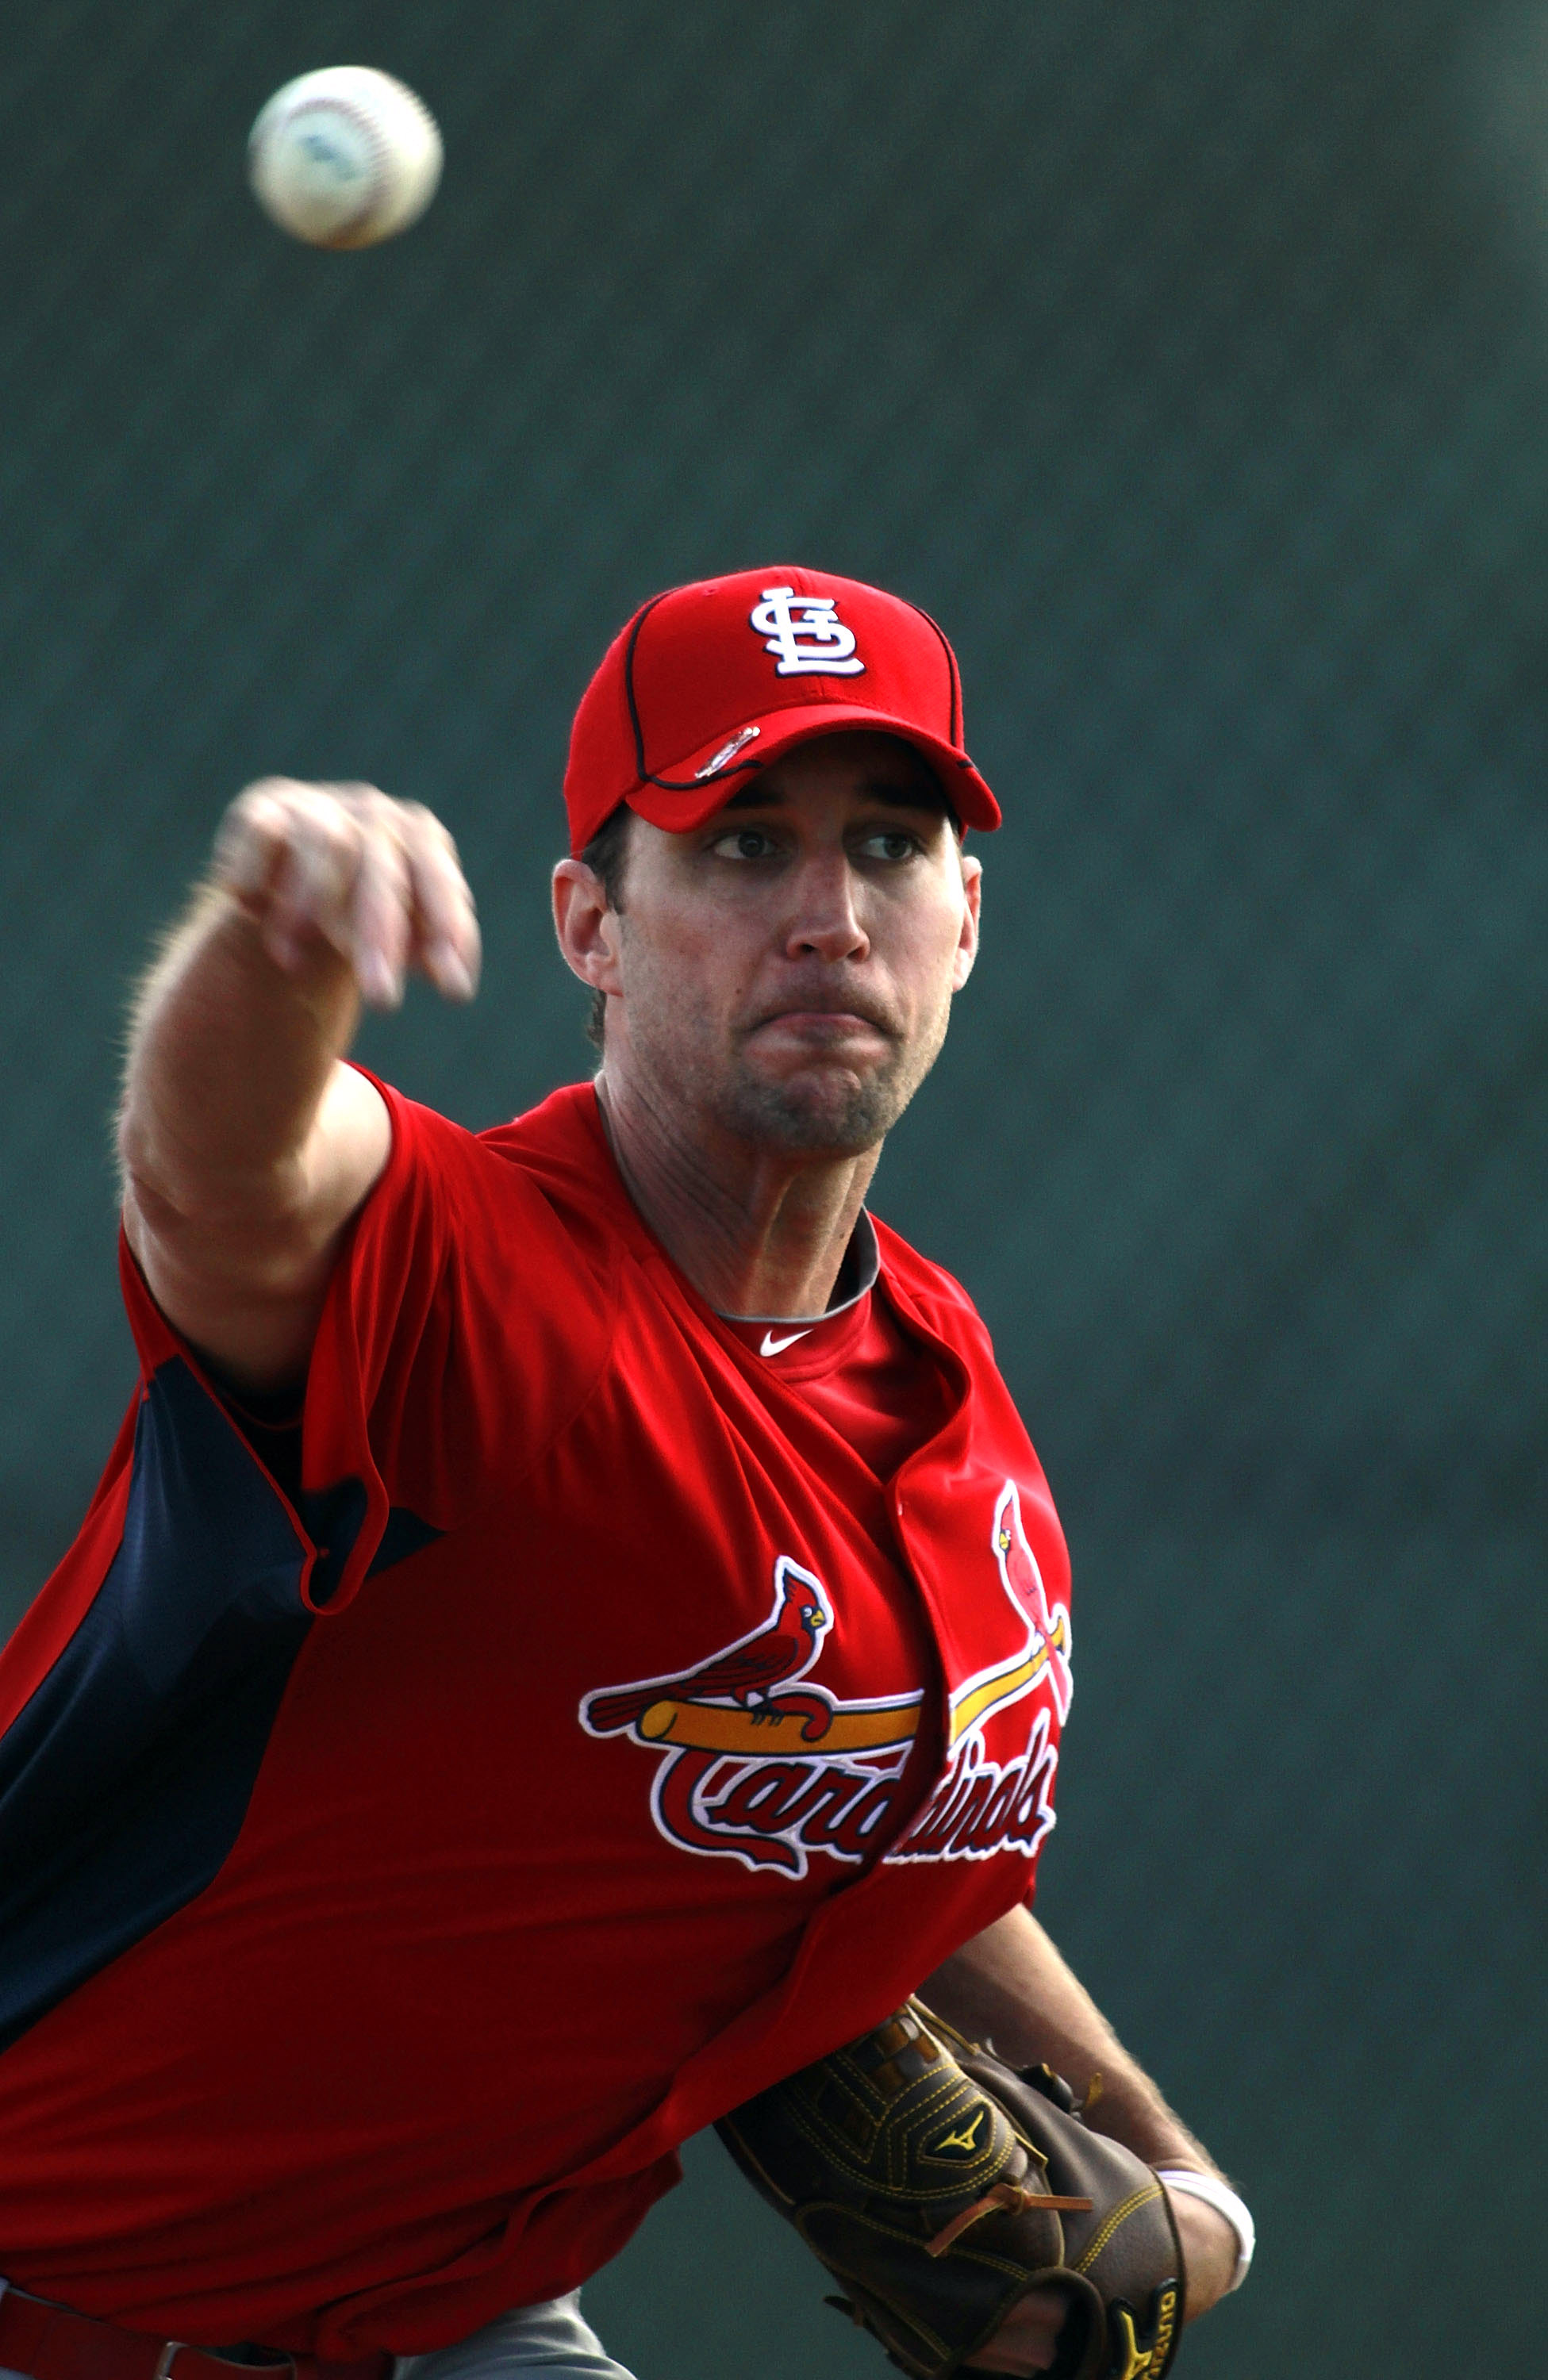 Can the Cards weather the storm without their ace Wainwright?